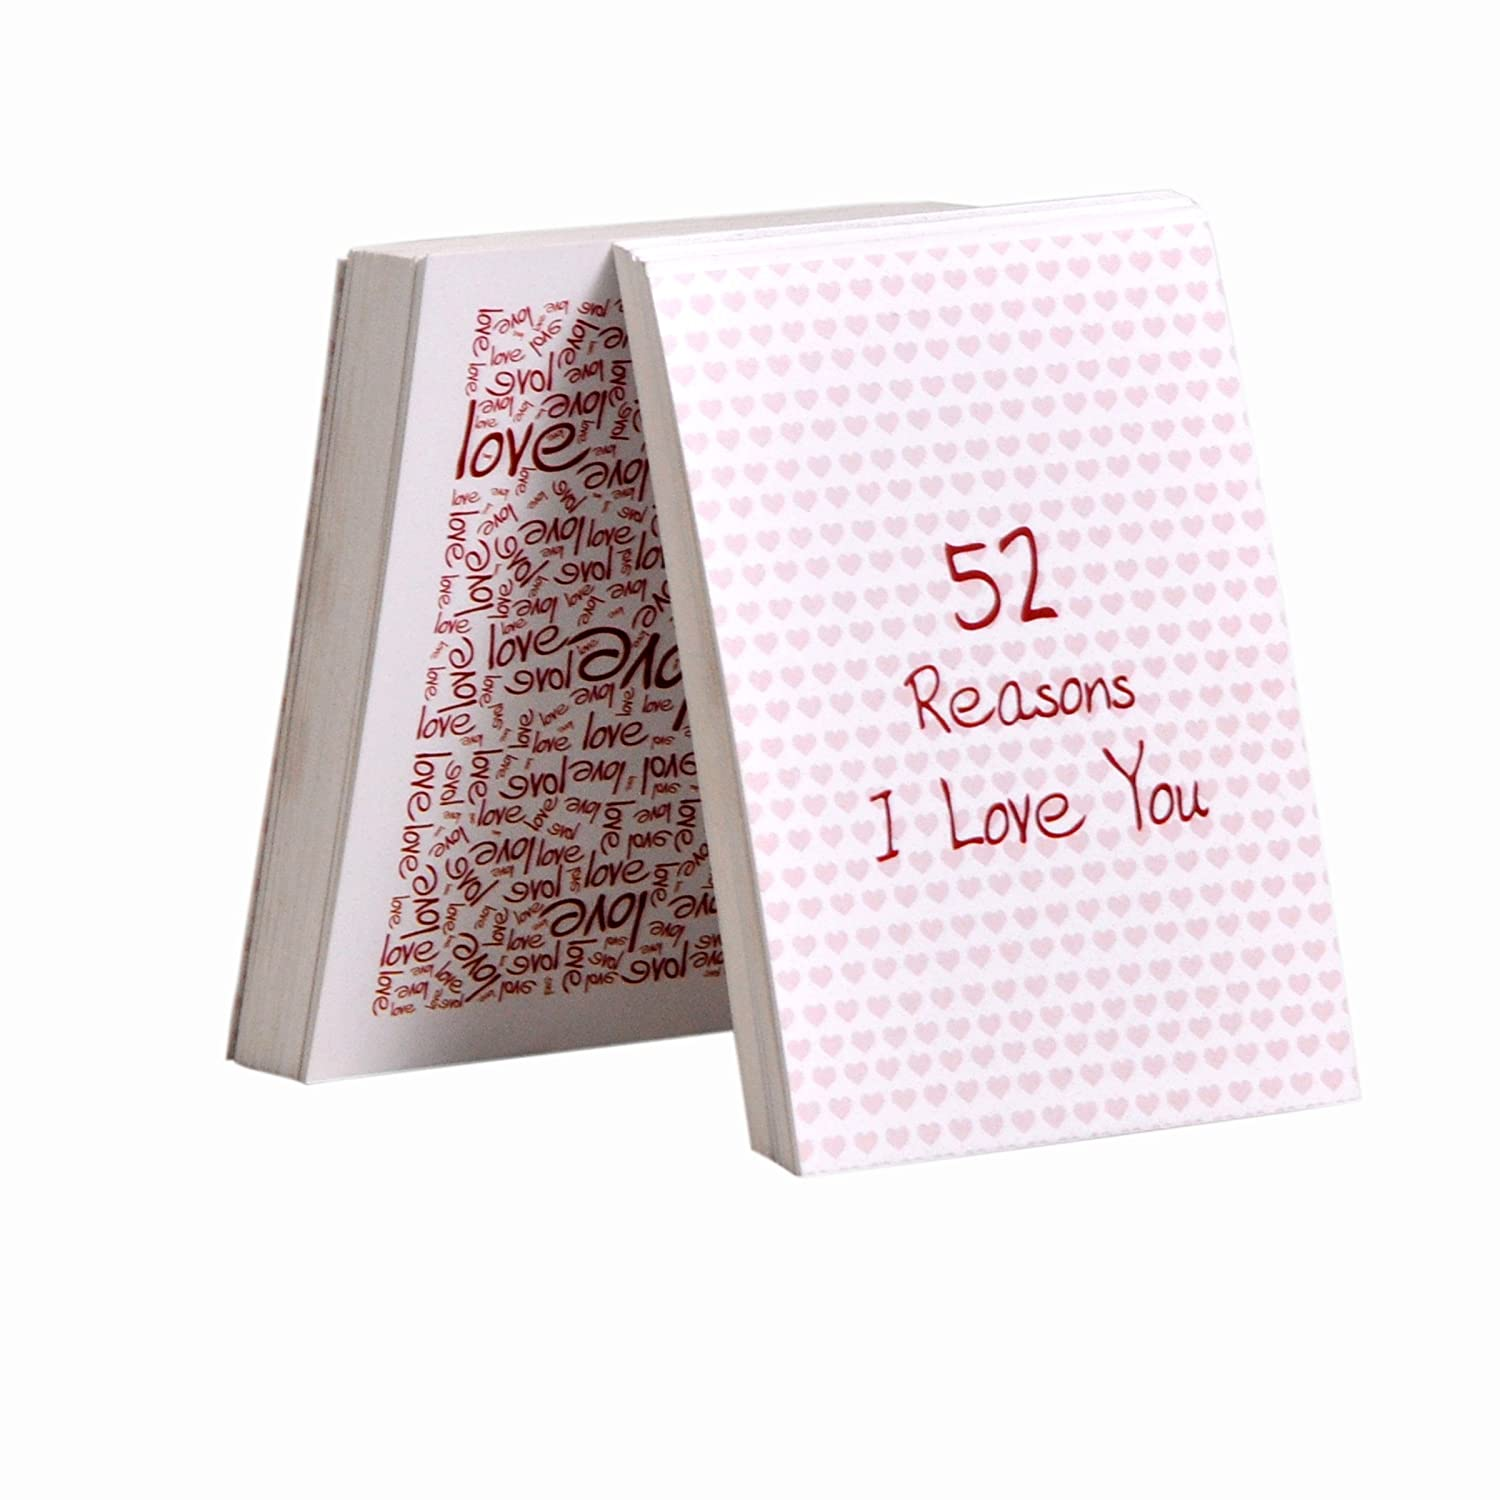 Buy paper greeting cards online – Buying Birthday Cards Online